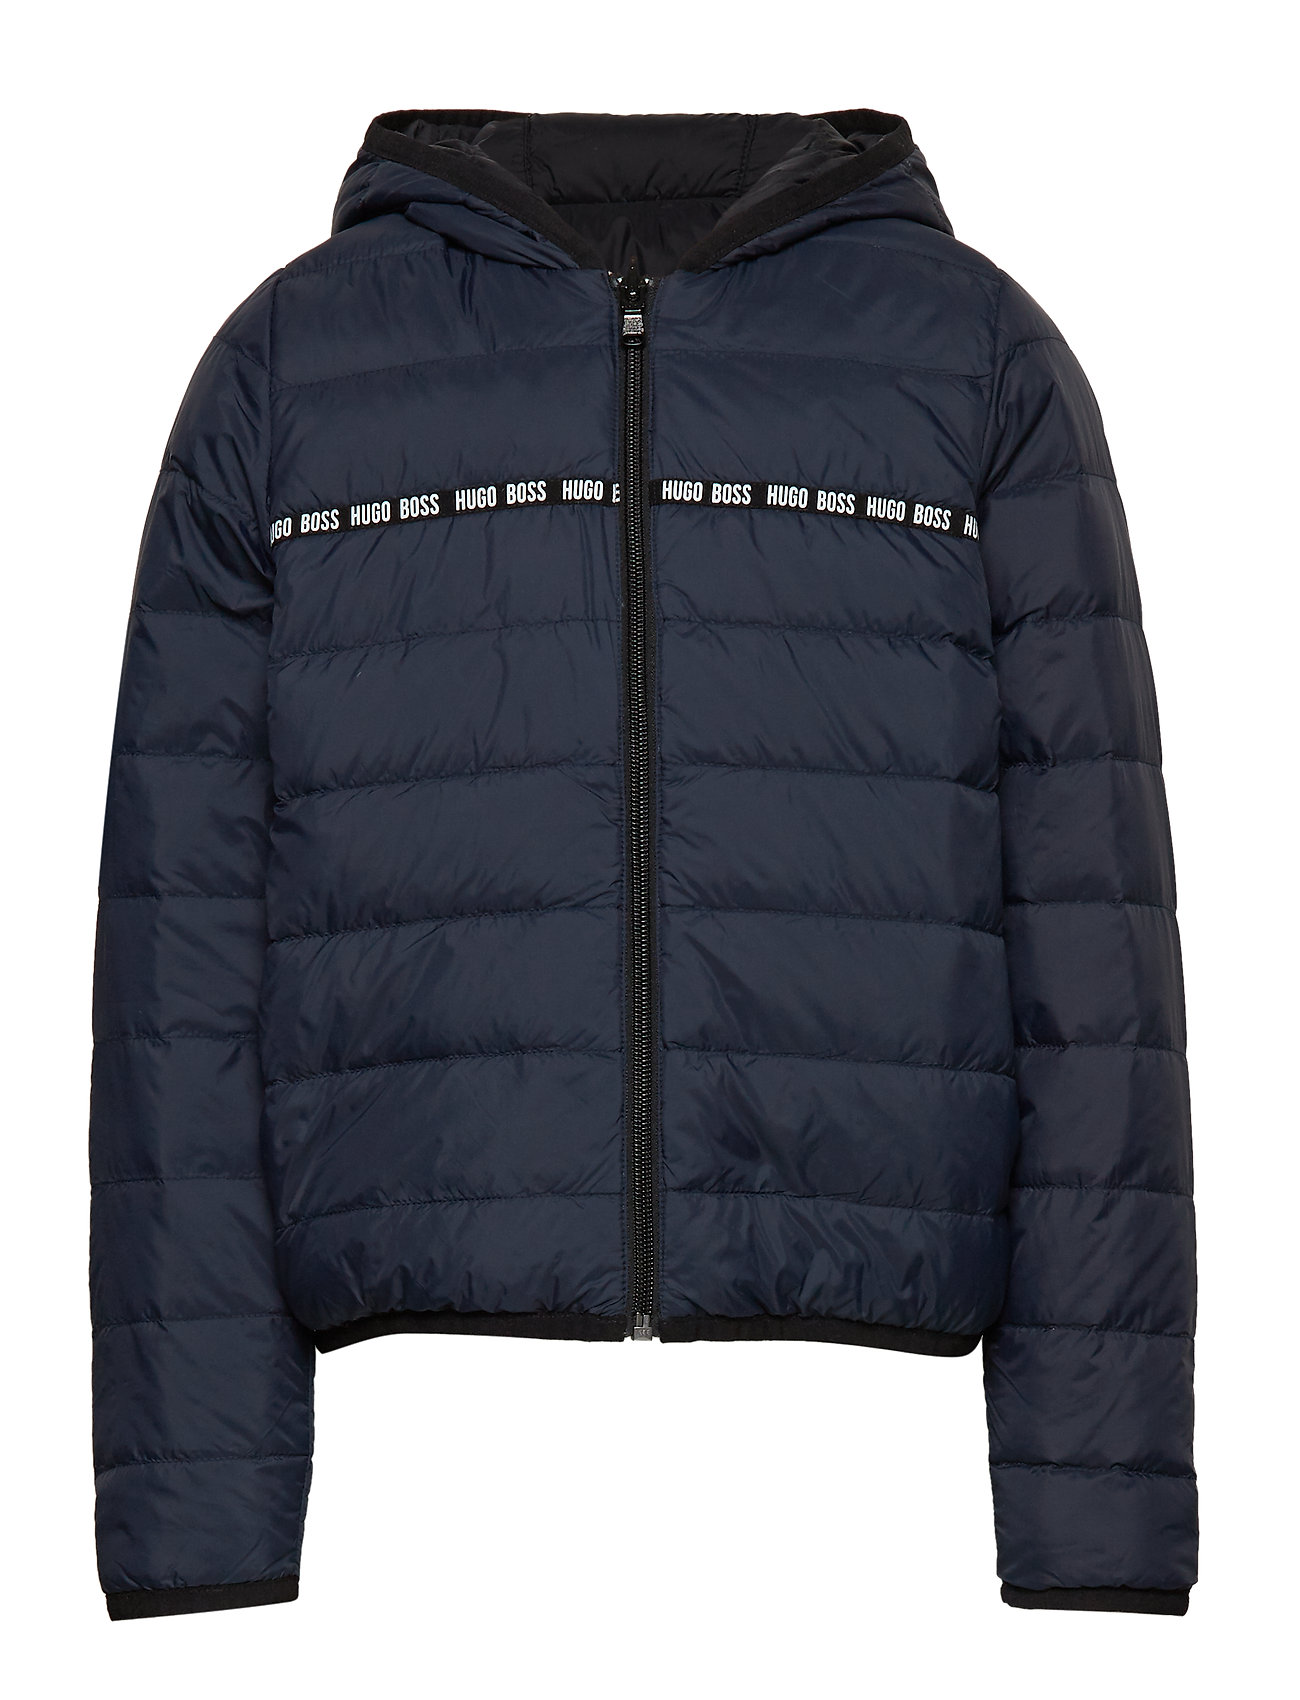 BOSS PUFFER JACKET - BLUE NAVY/BLACK